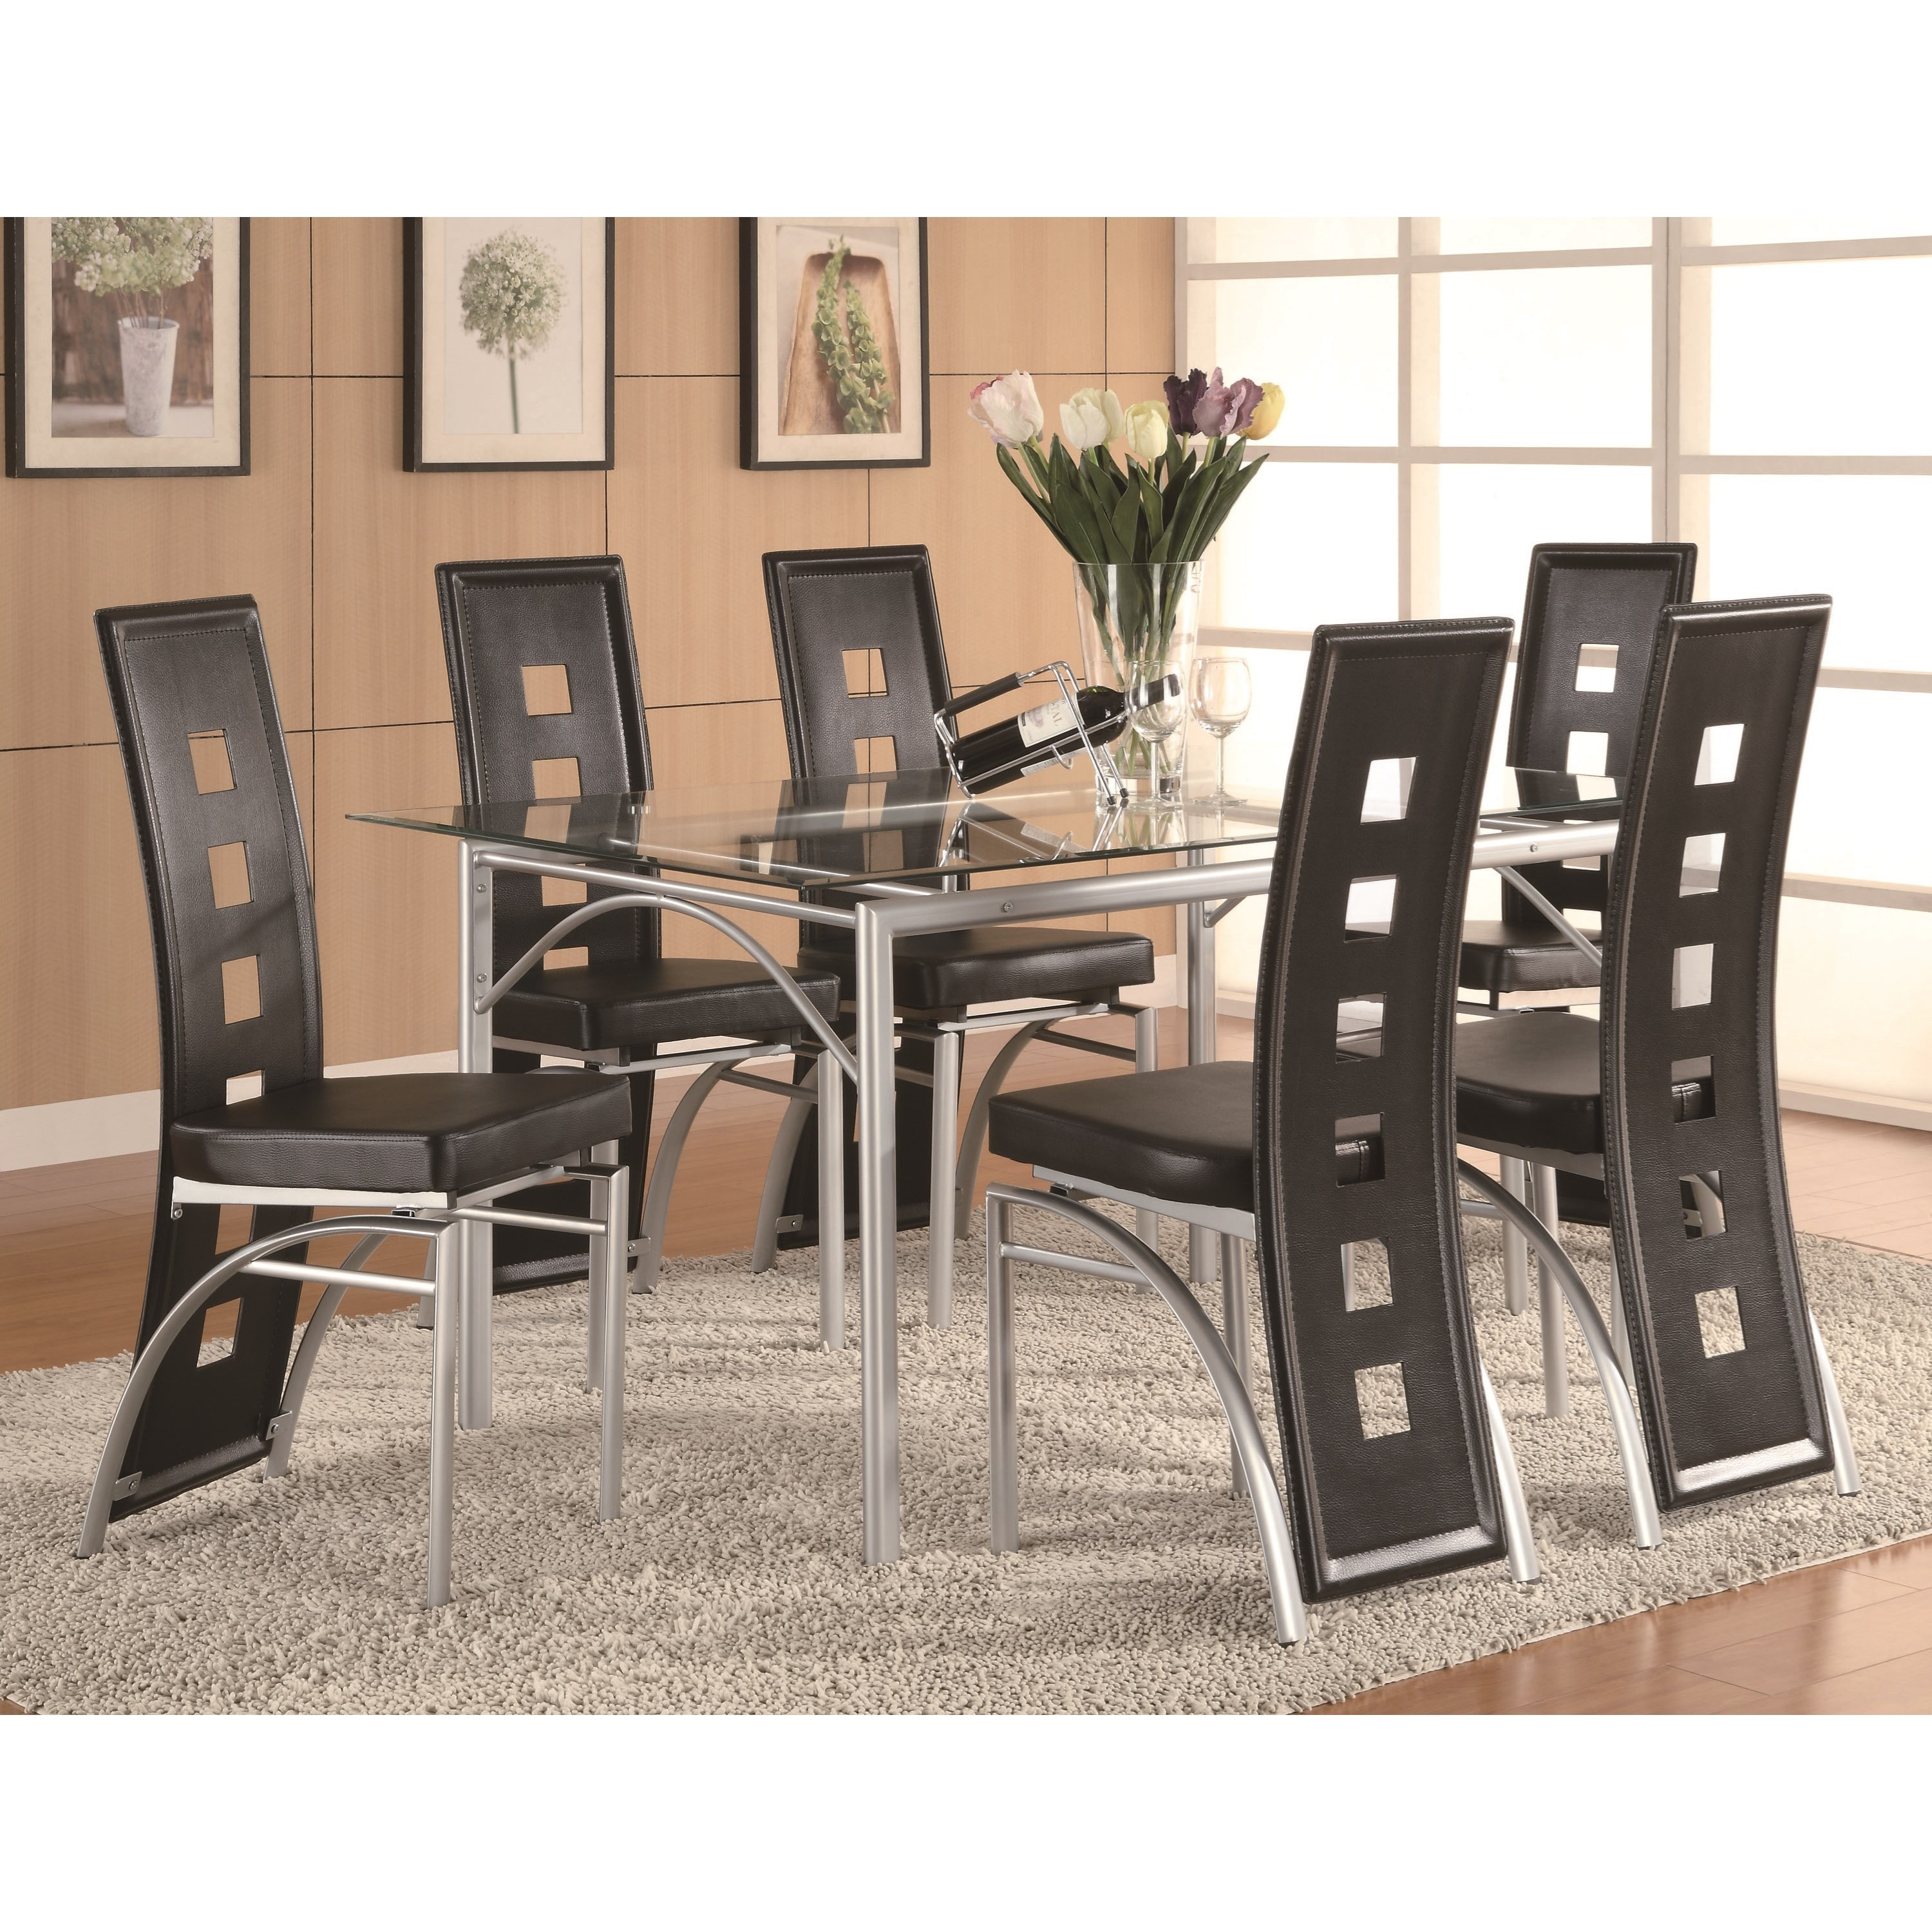 Coaster Los Feliz Counter Height Dining Set - Item Number: 101688+6x101689